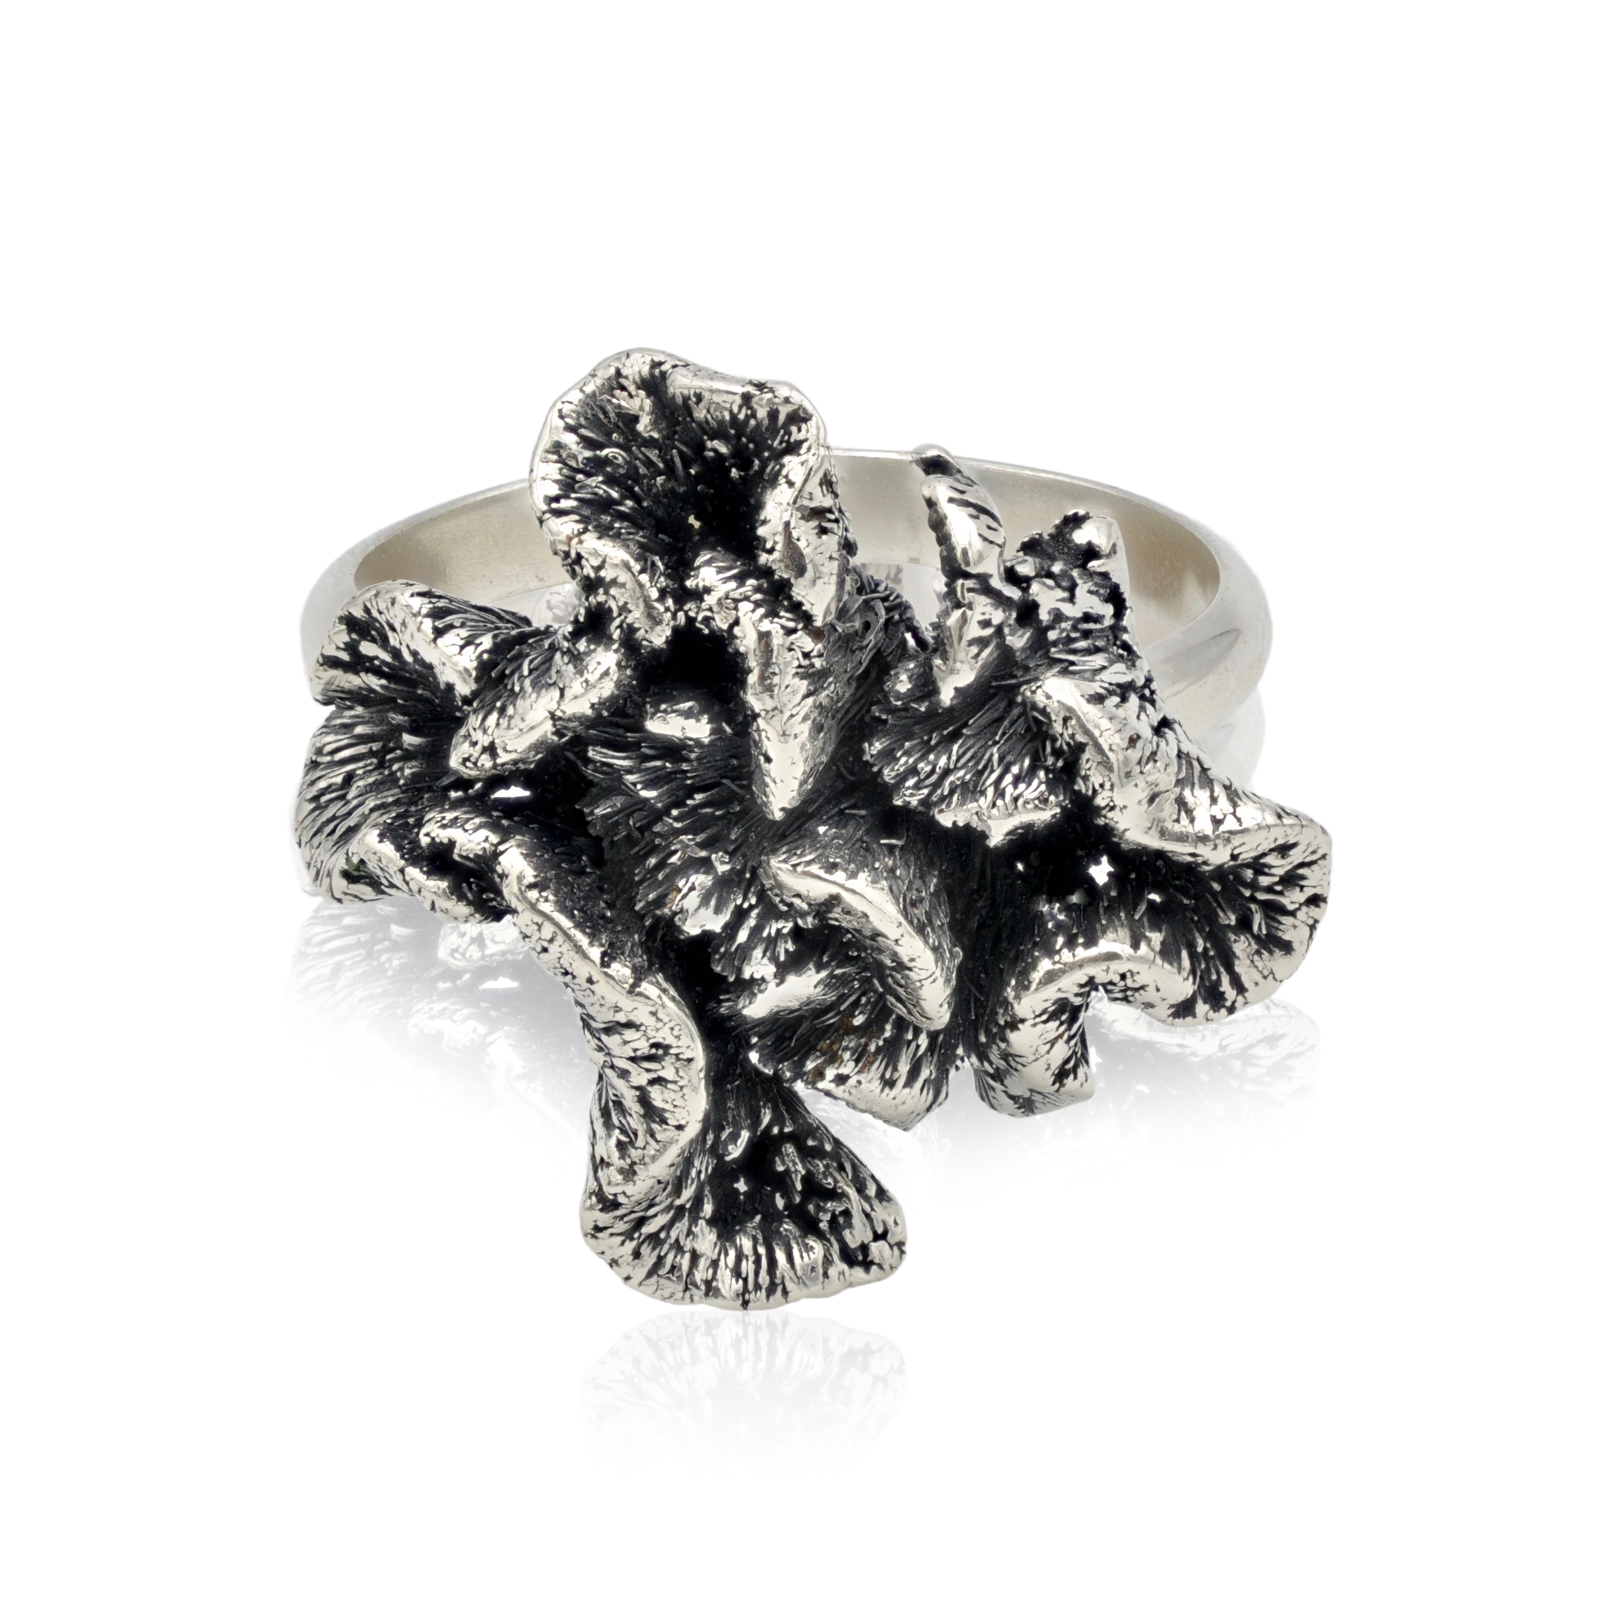 cockscombs-antiqued-sterling-silver-ring-3.jpg